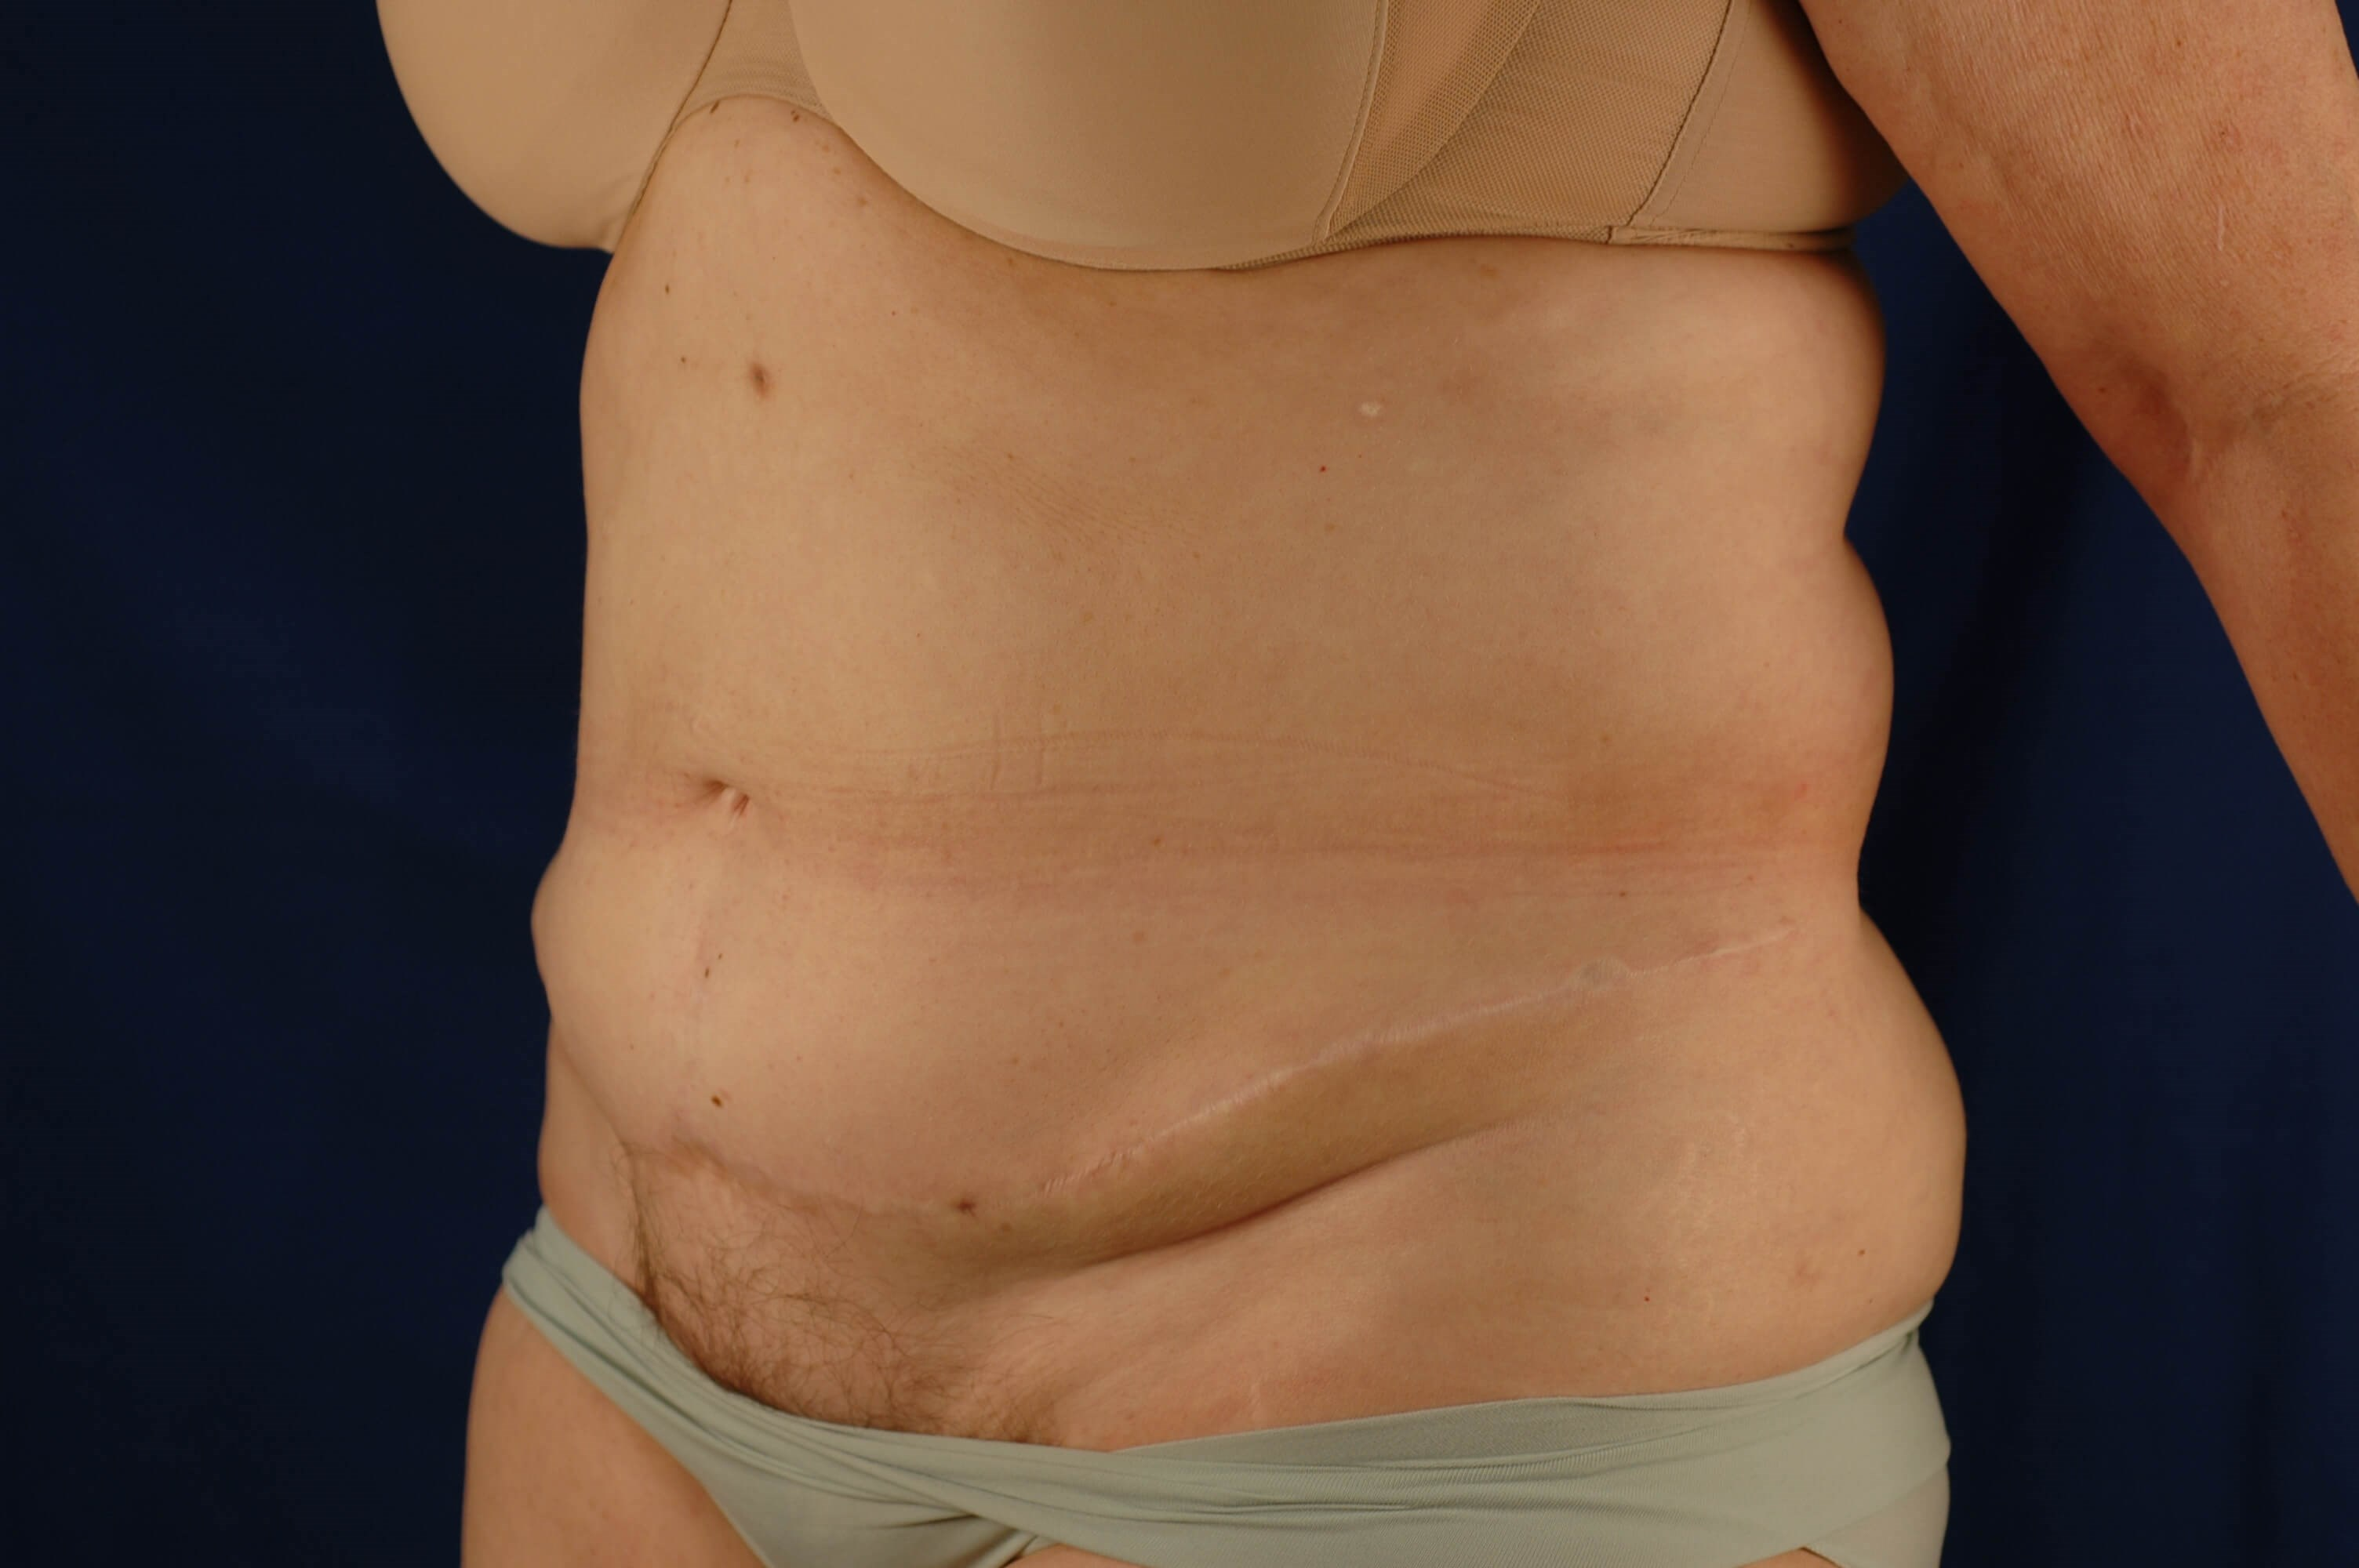 Newport Beach Body Contouring Oblique View After